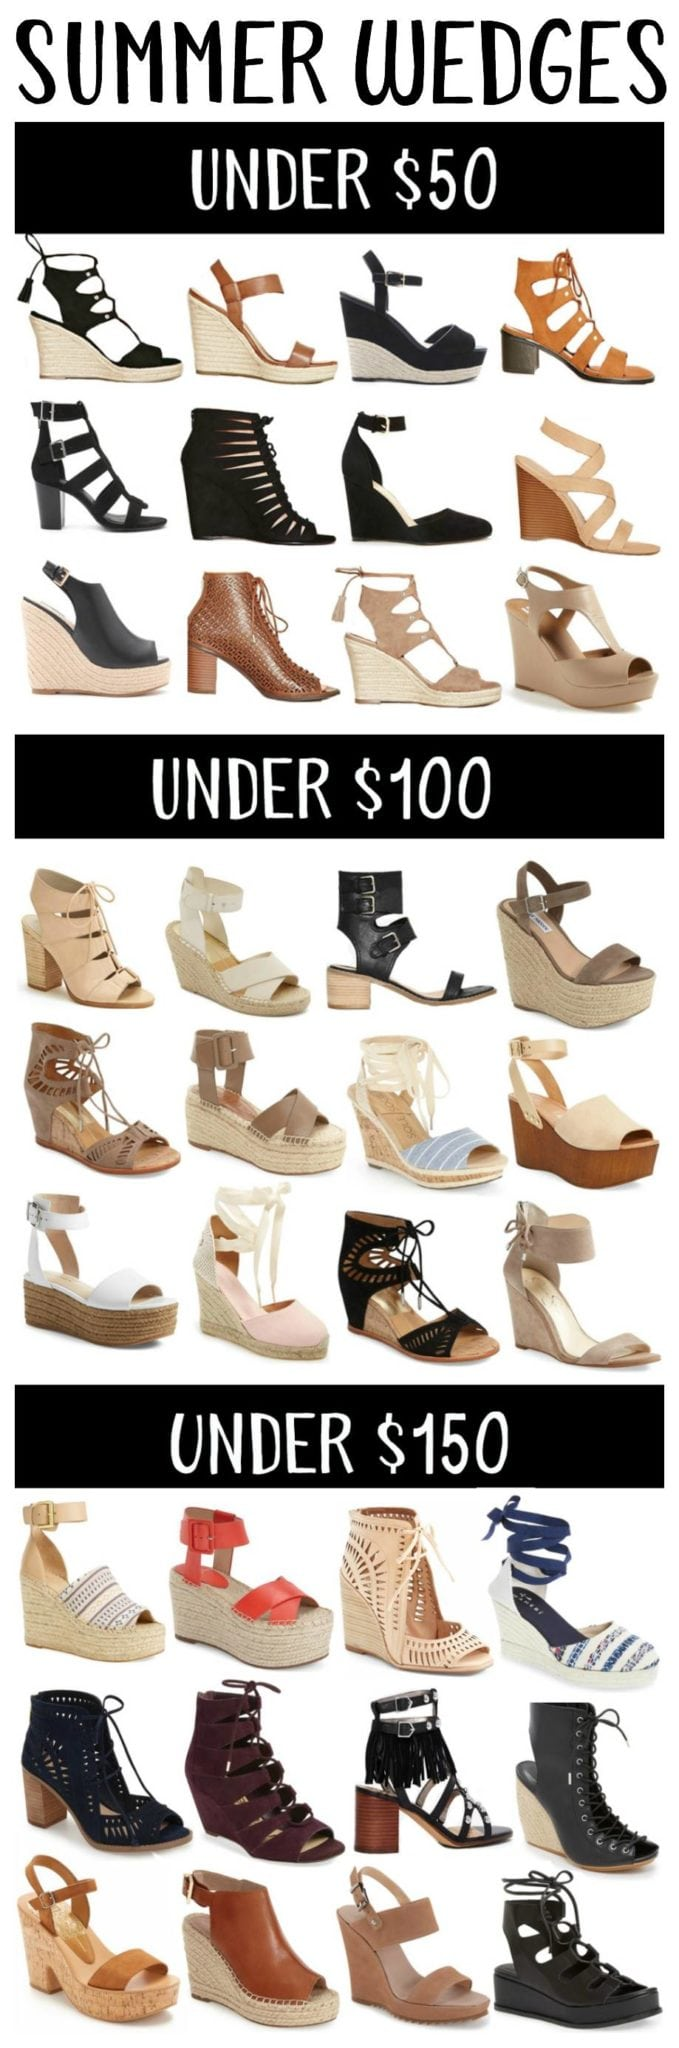 Summer Wedges Roundup